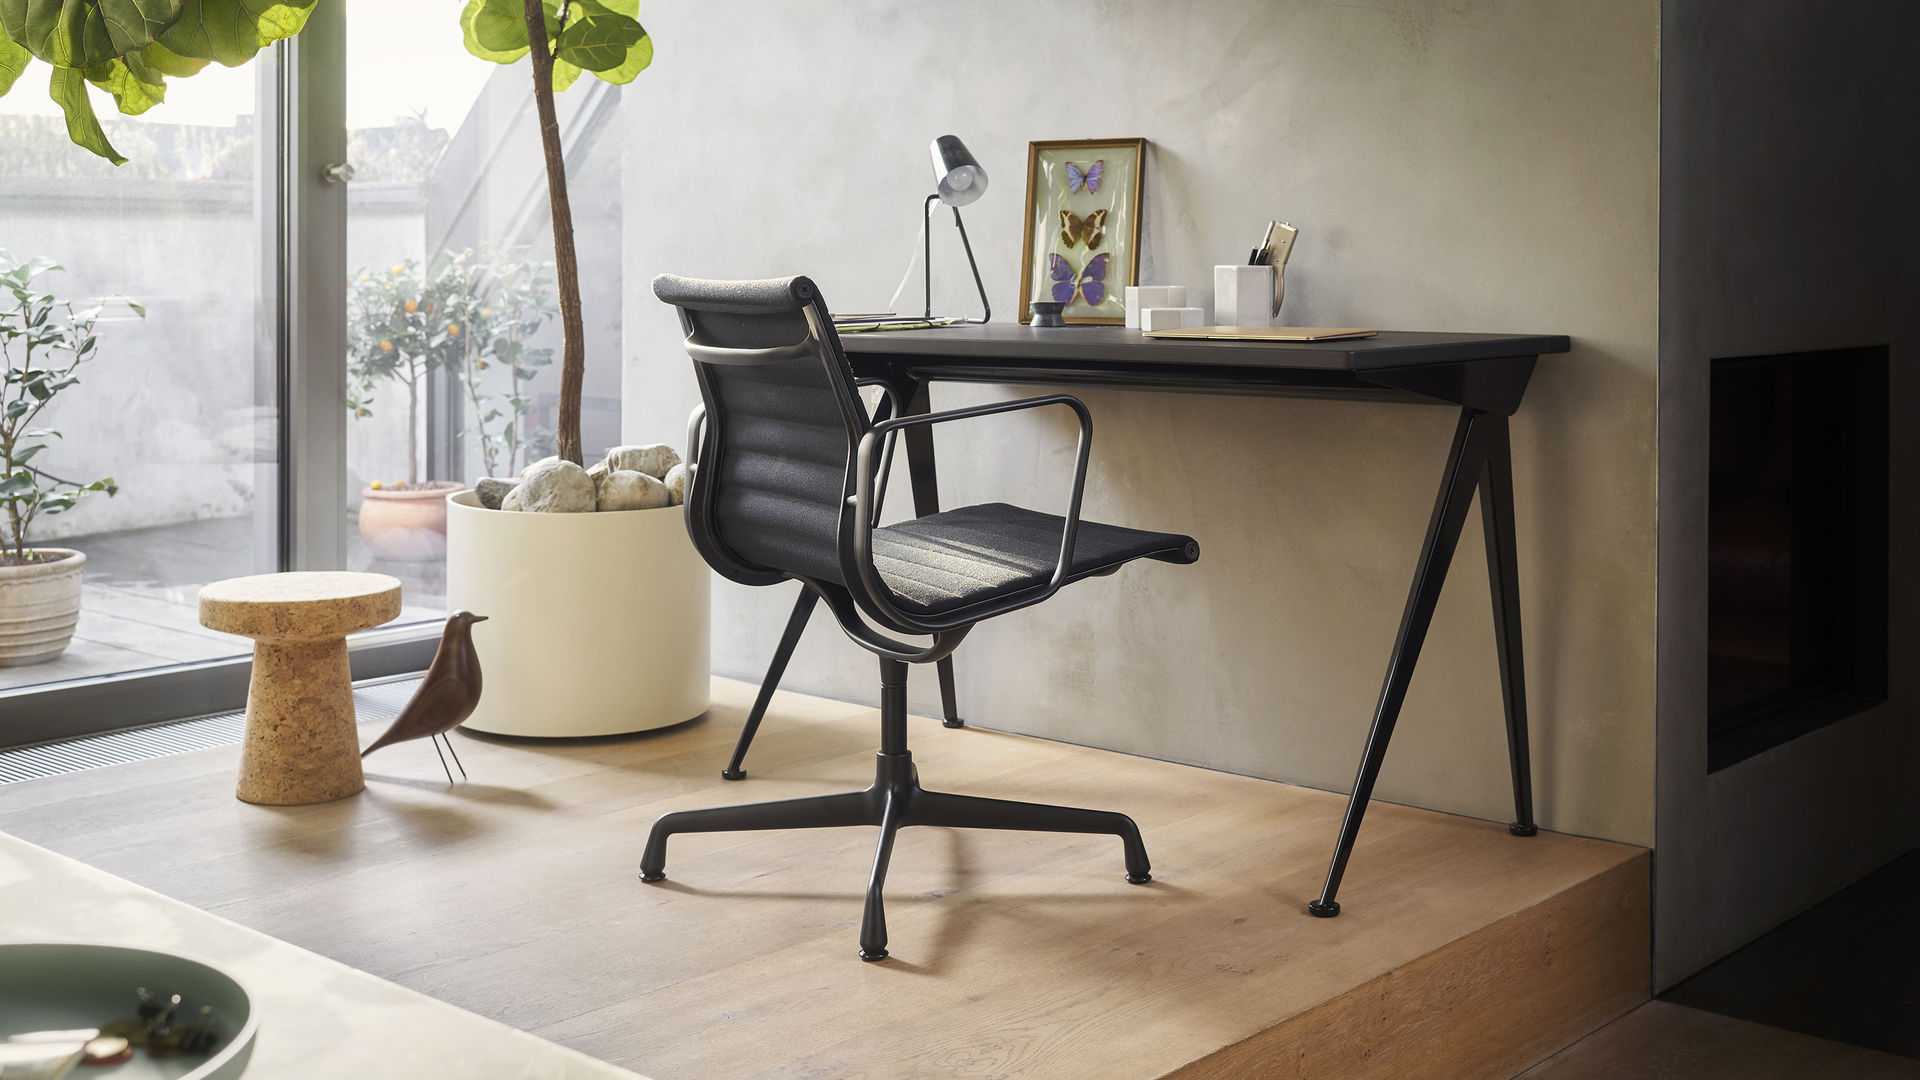 Aluminium Chair EA108 Black Version Compas Direction Cork Stool Eames House Bird_web_16-9